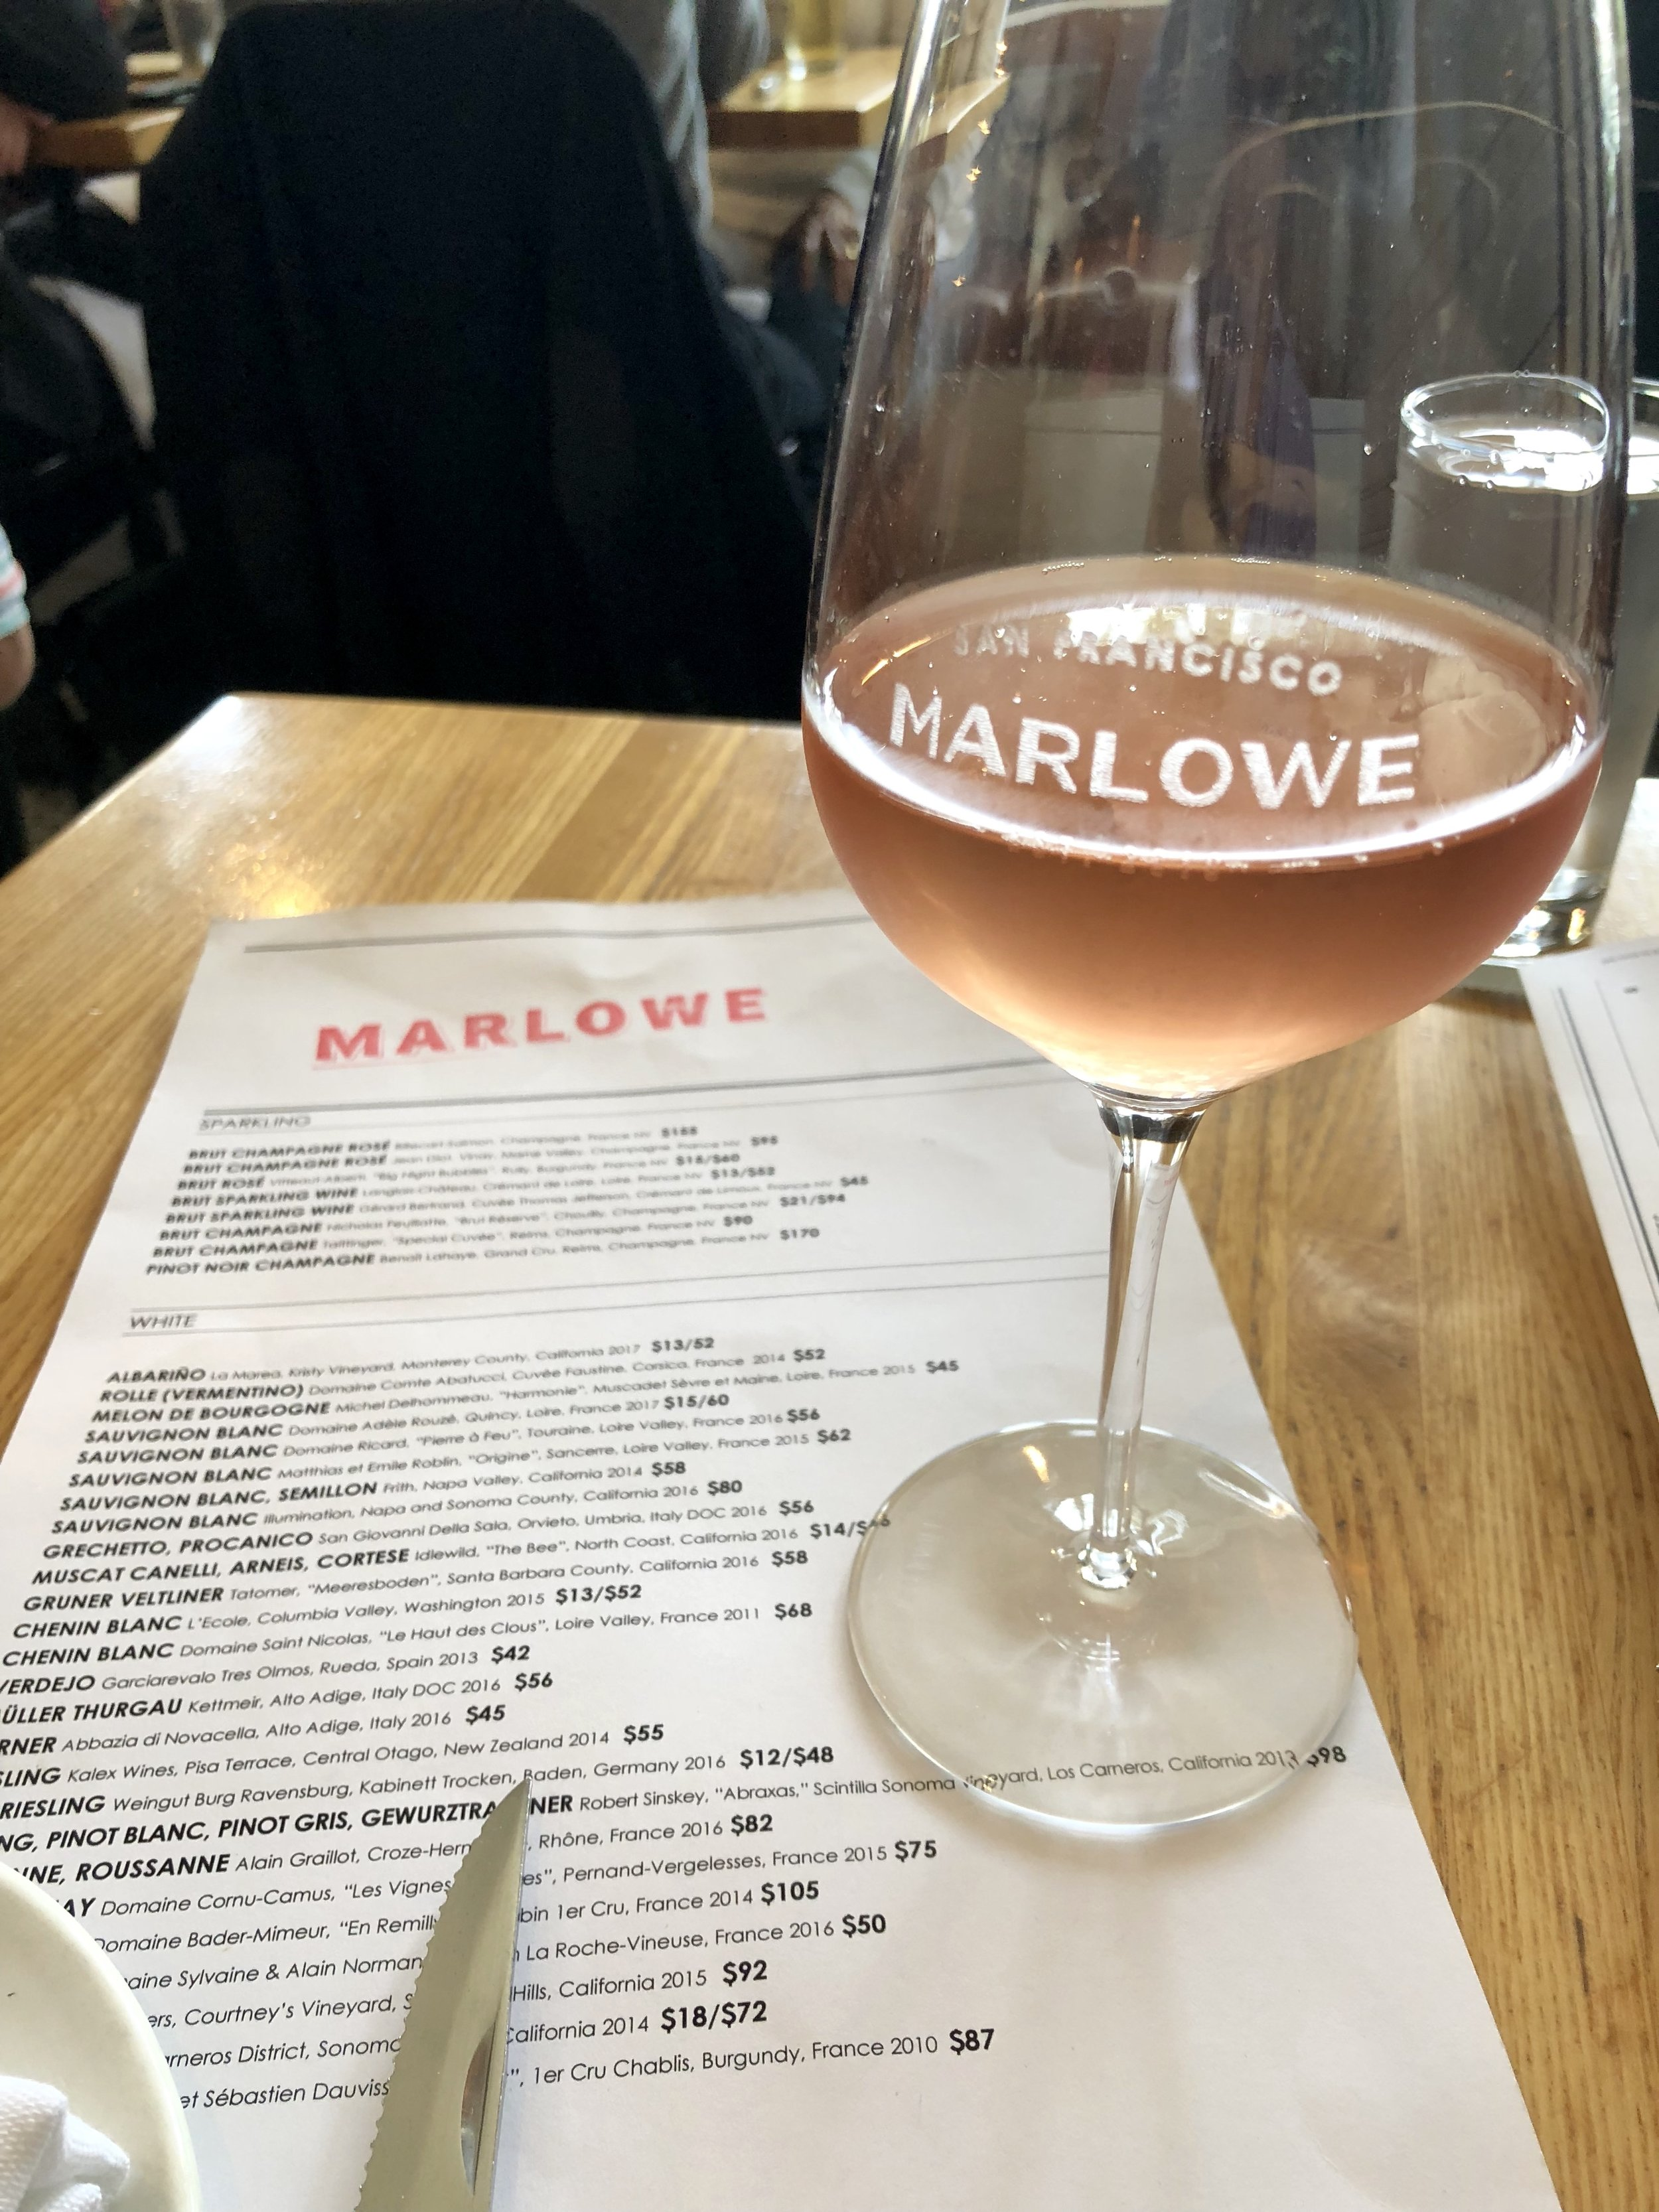 Lunchtime wine at Marlowe, San Francisco.